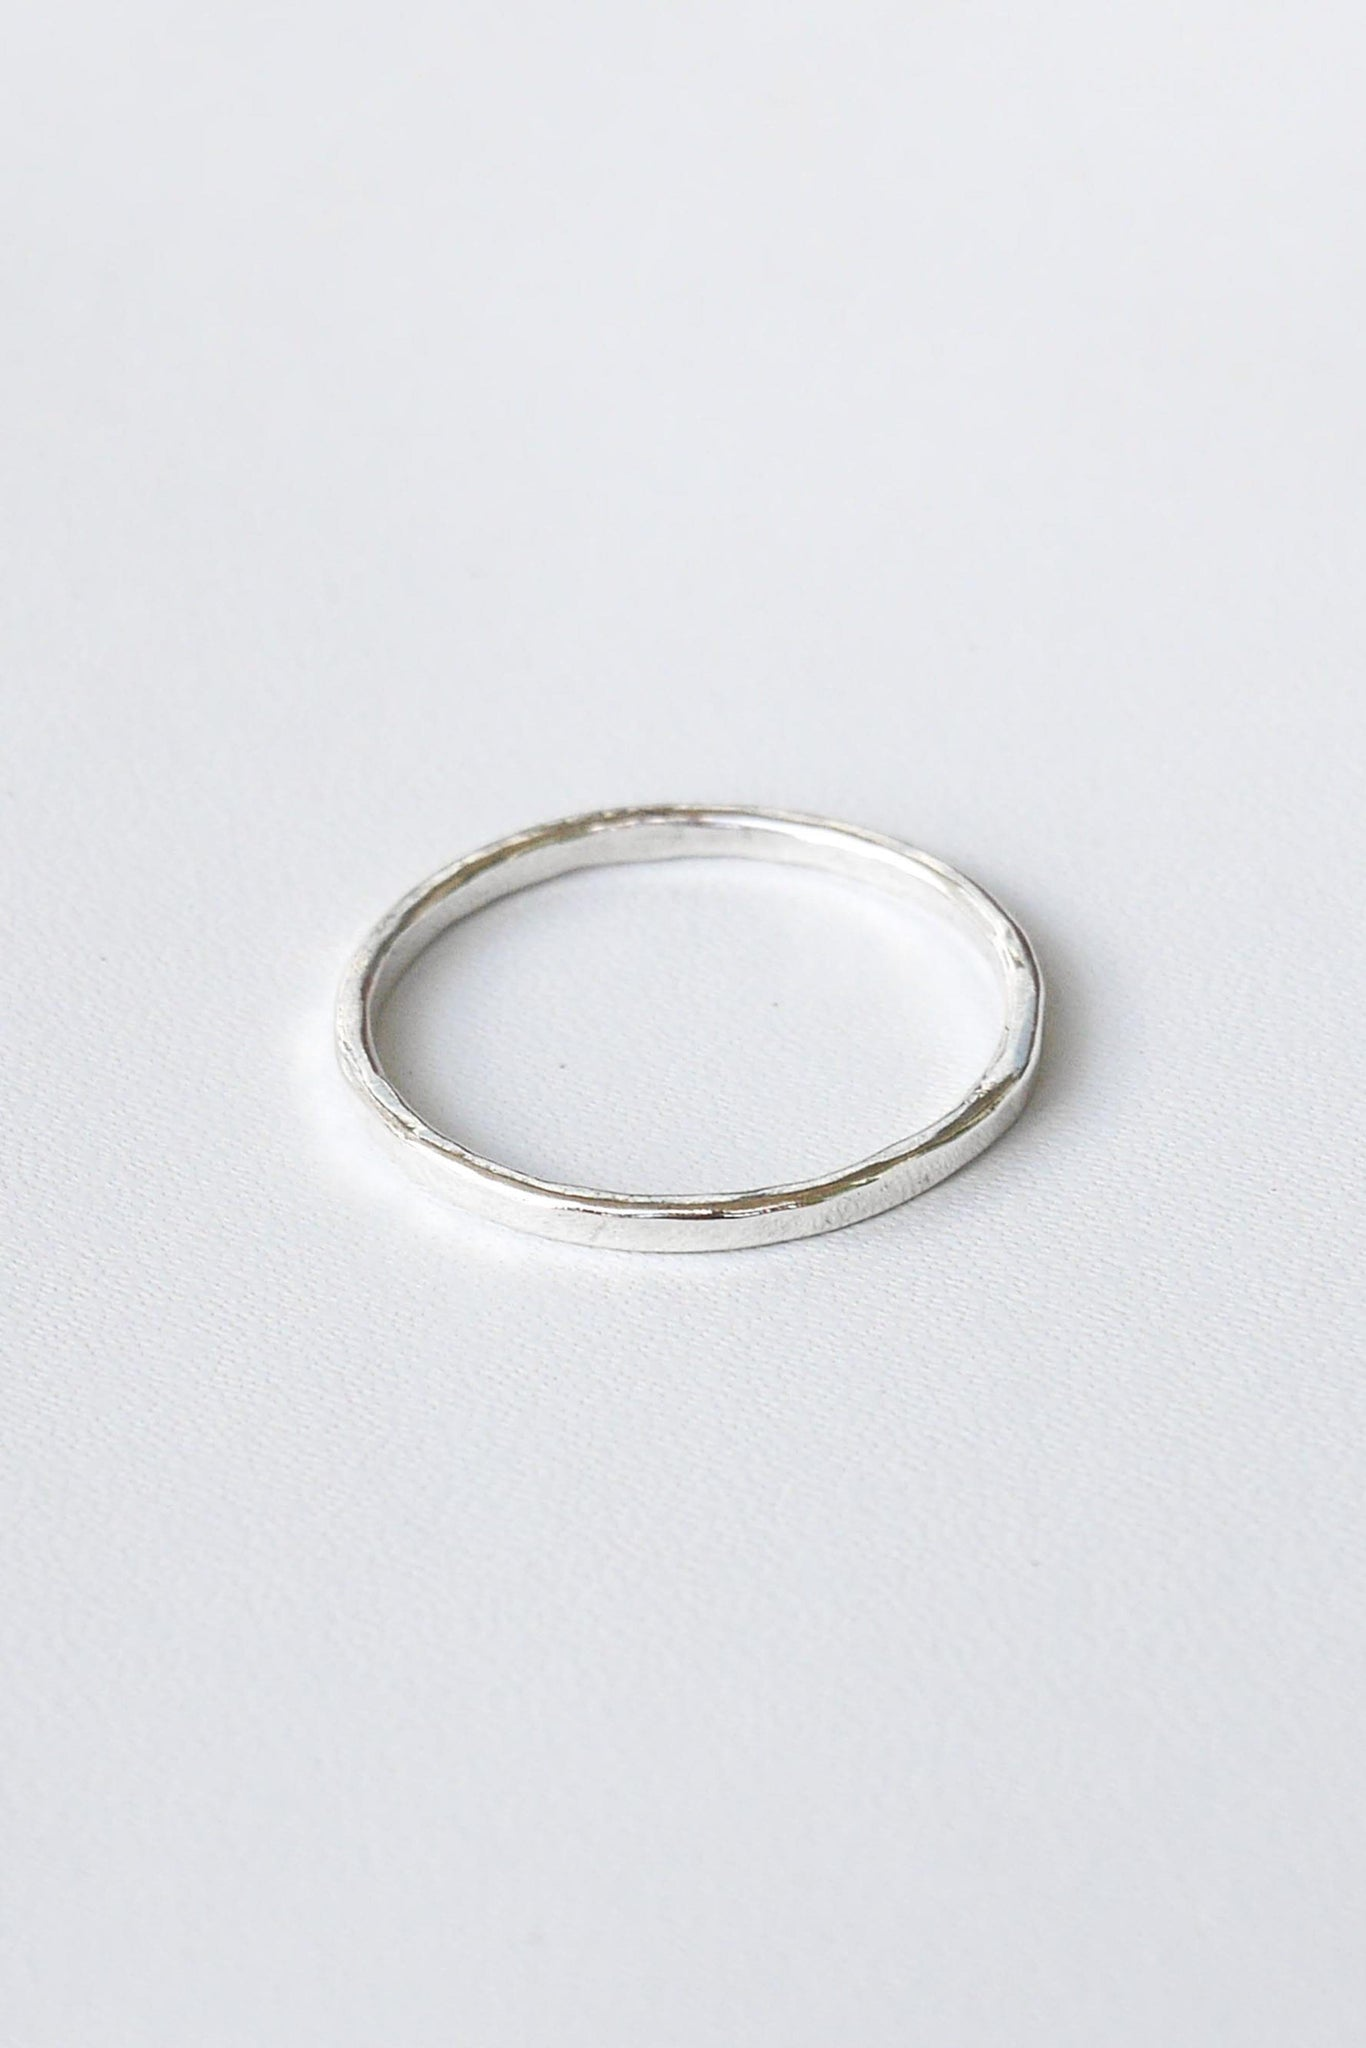 Simply Silver – Silver Ring